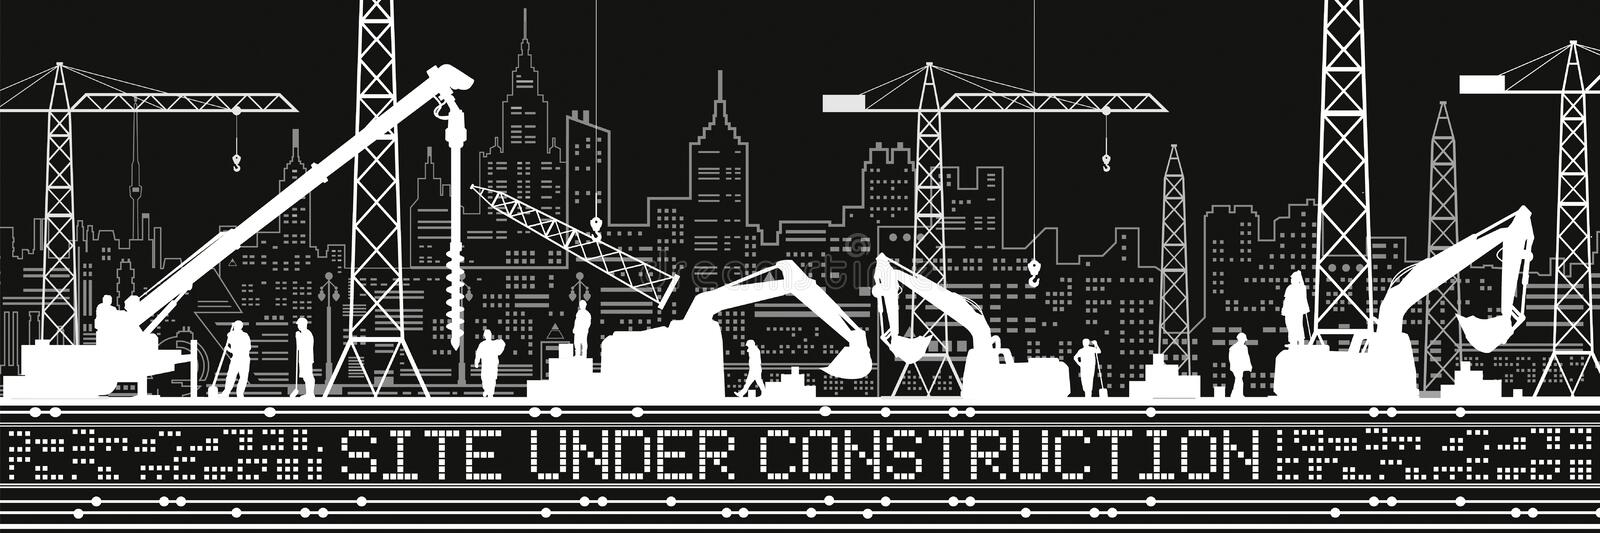 Site Under Construction illustration. Buildings panorama, industrial landscape, Constructional cranes and excavators, urban scene. vector illustration